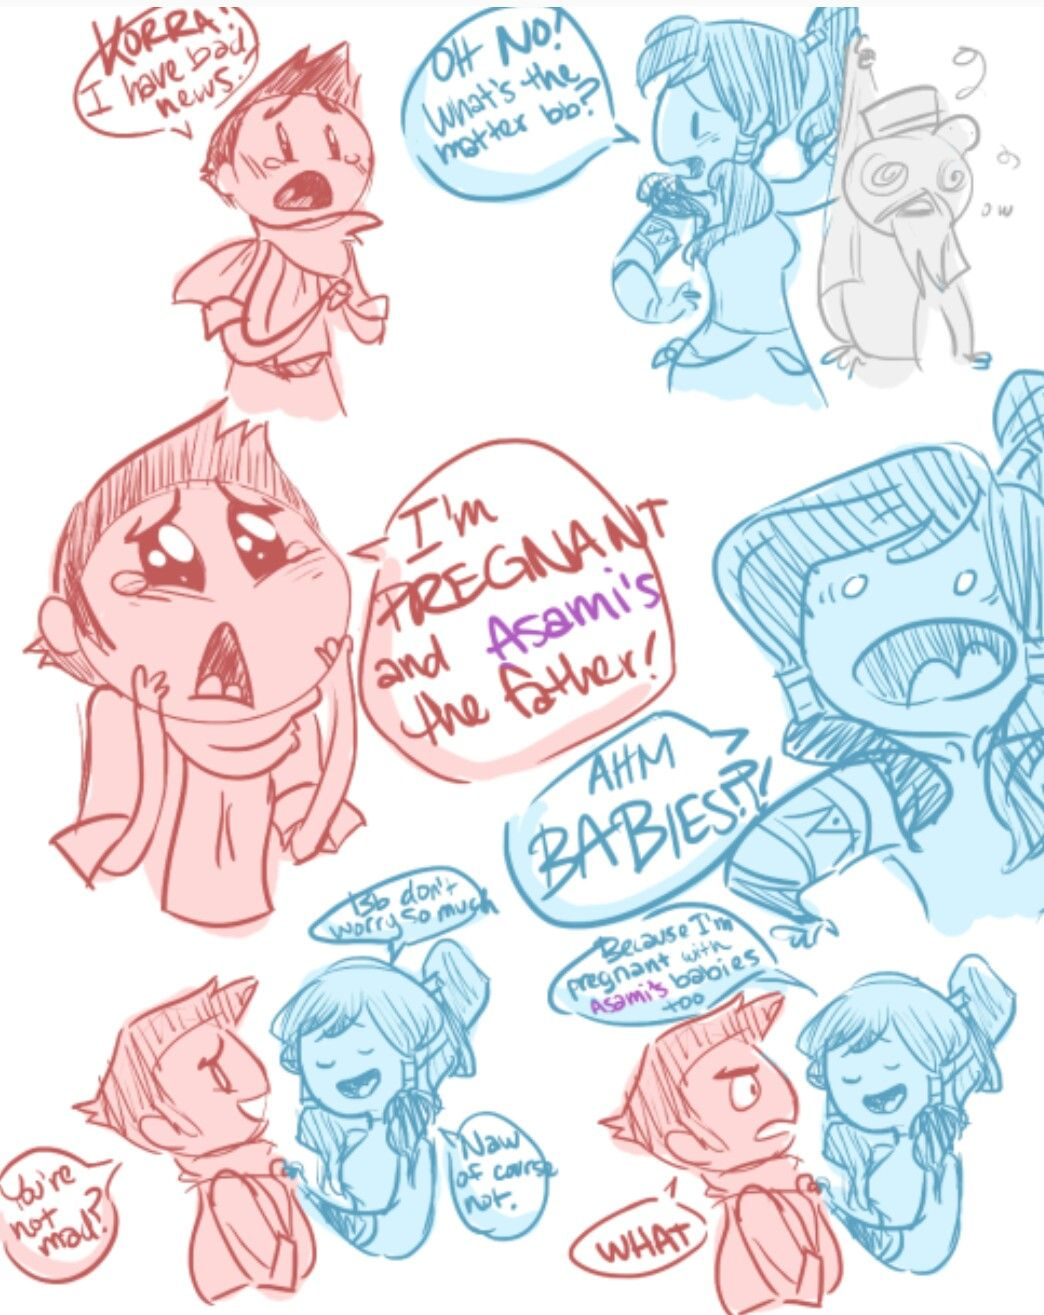 A hilarious LOK comic by tumblr user masterarrowhead. Thank you arrow head for creating this part 1 of 2